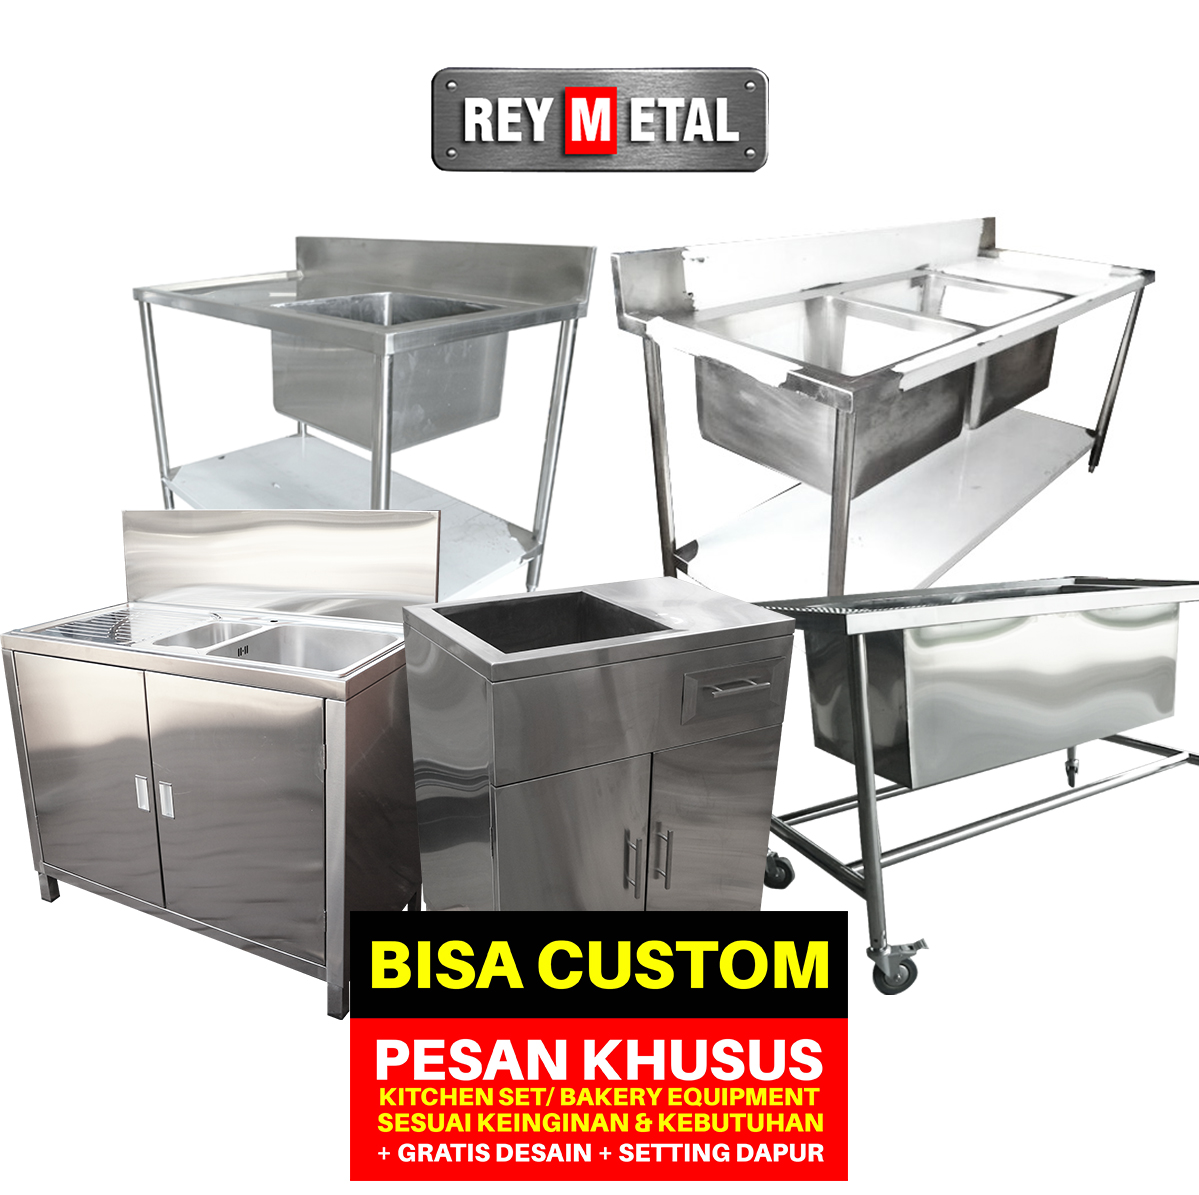 Reymetal com produsen kitchen set stainless for Harga kitchen set aluminium per meter